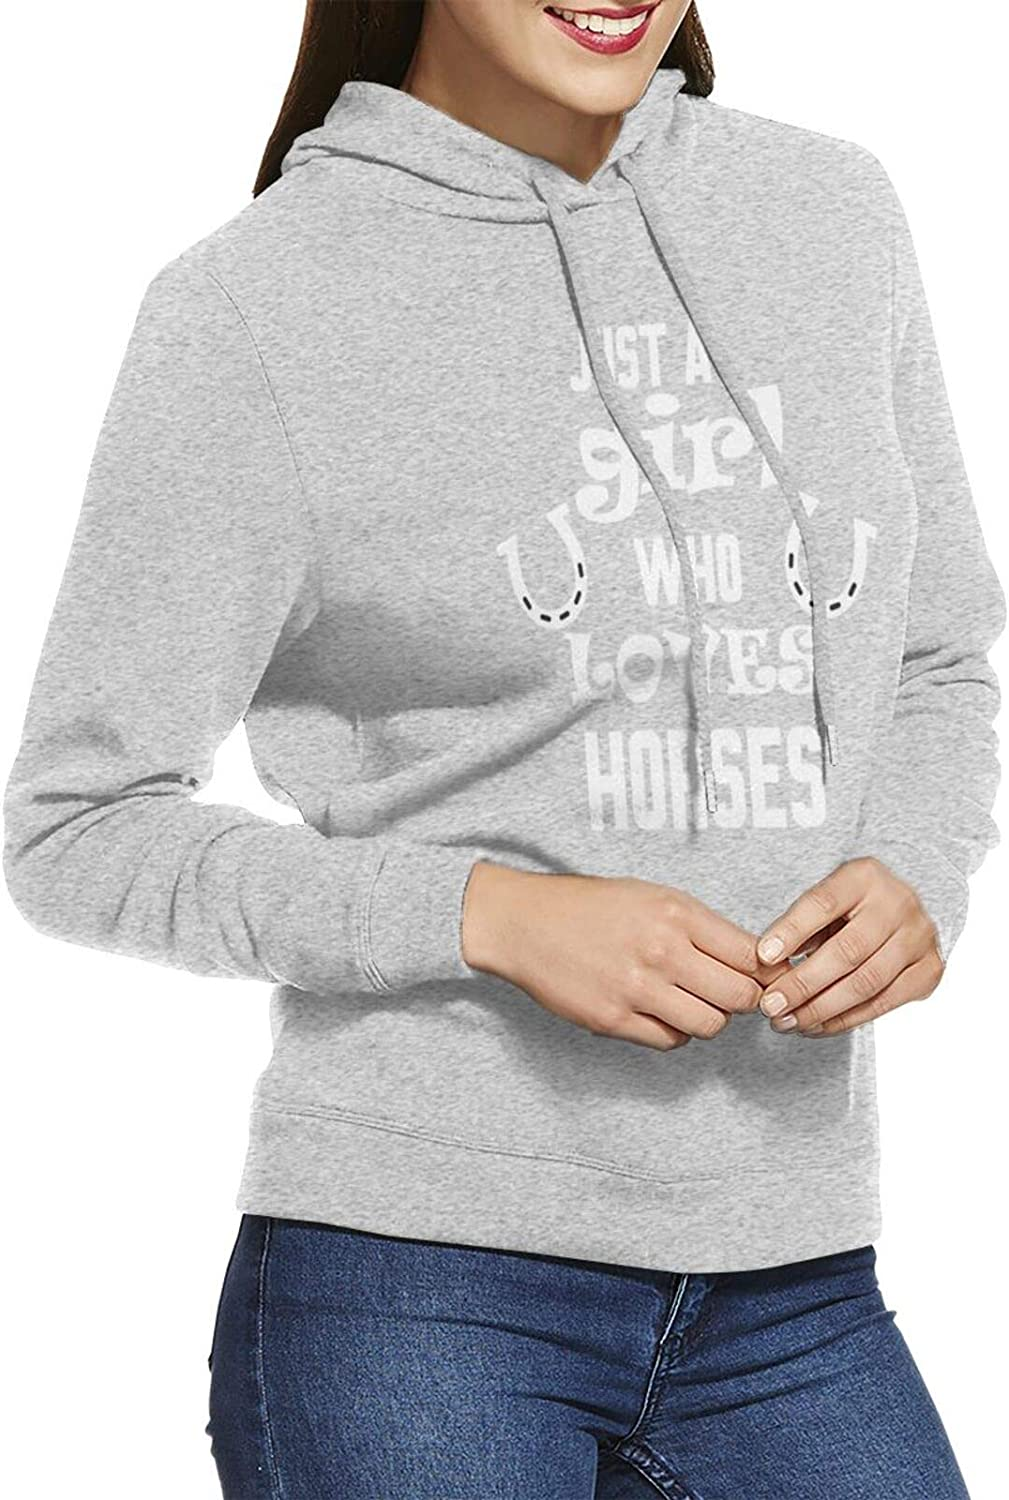 AIMILUX Women's Hoodie Sweatshirt online shopping Just New Shipping Free A H Who Girl Loves Horses